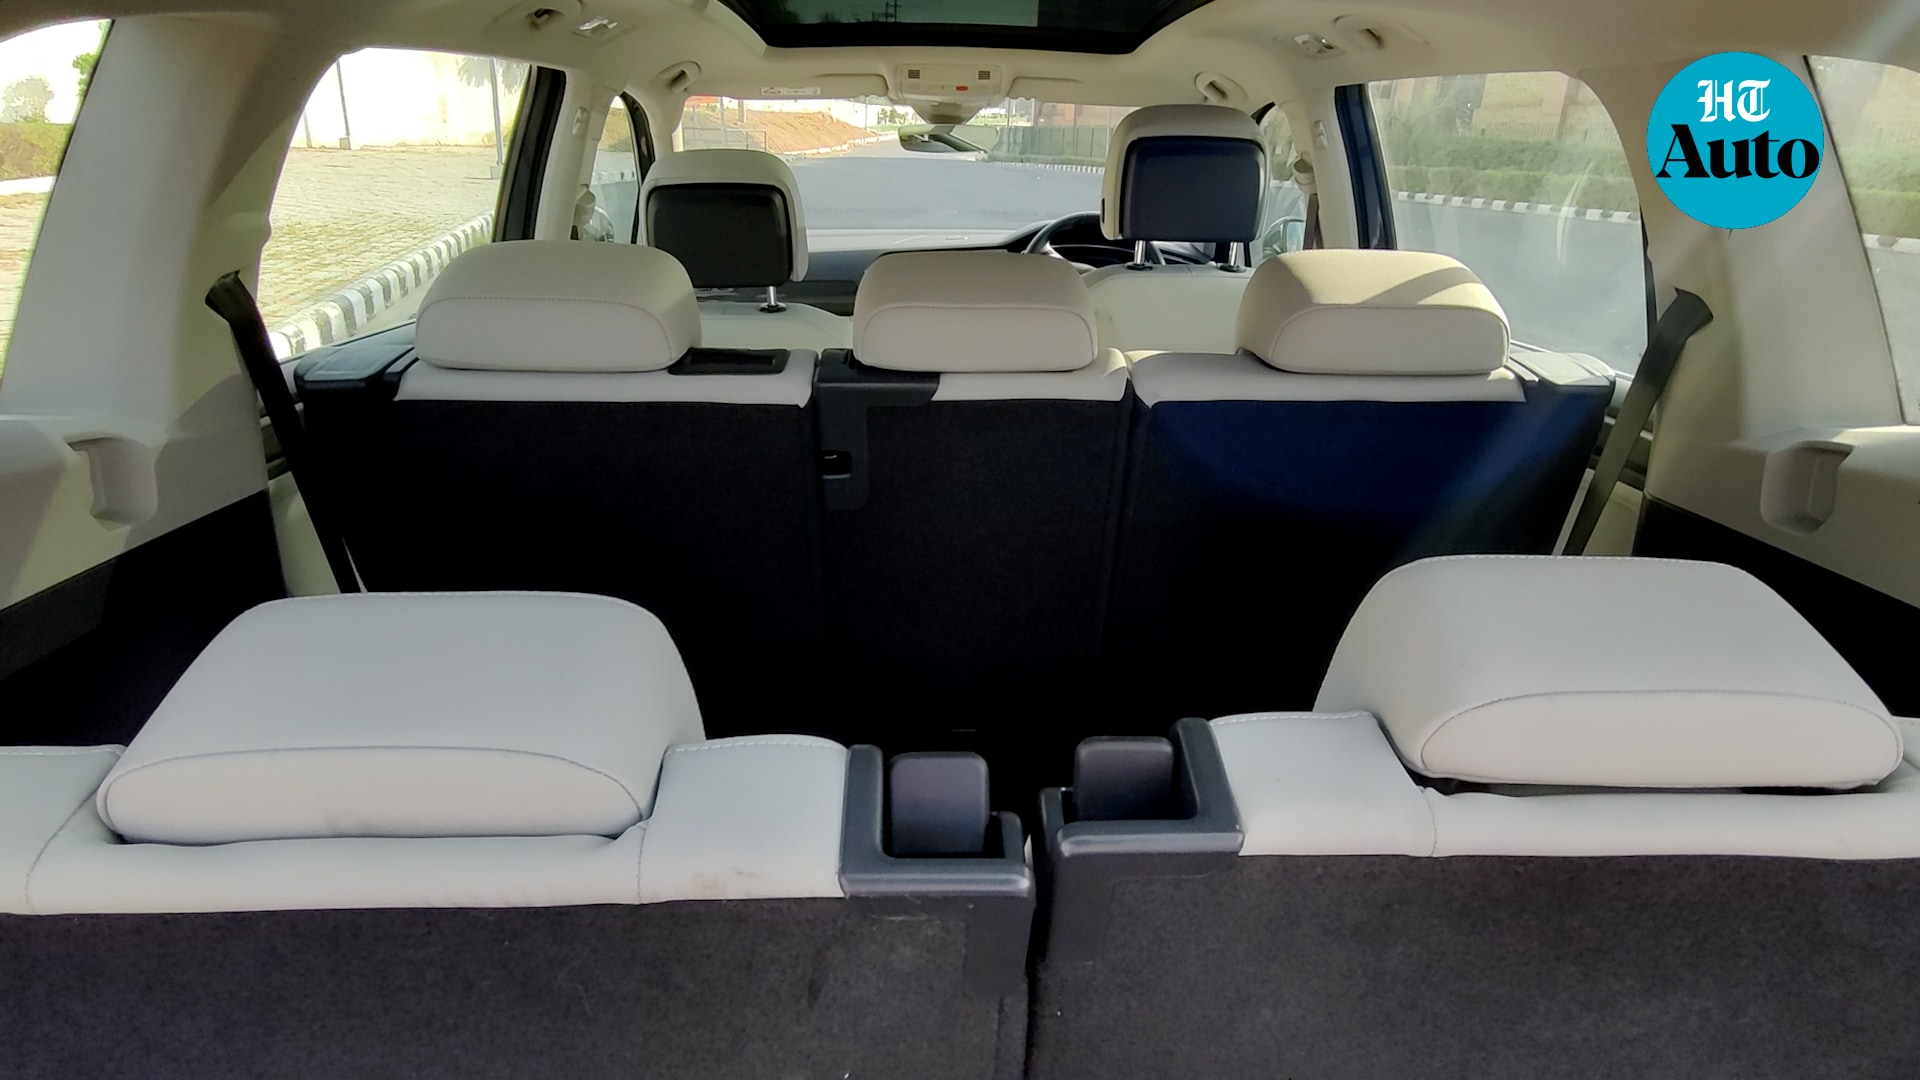 The Tiguan AllSpace boasts of three rows of seats, the most obvious difference from the earlier Tiguan. Seats in the front two rows have been elegantly crafted to ensure maximum comfort but the last row is hopelessly cramped for an adult. However, Volkswagen has gotten around the main complaint with the earlier Tiguan, lack of space.